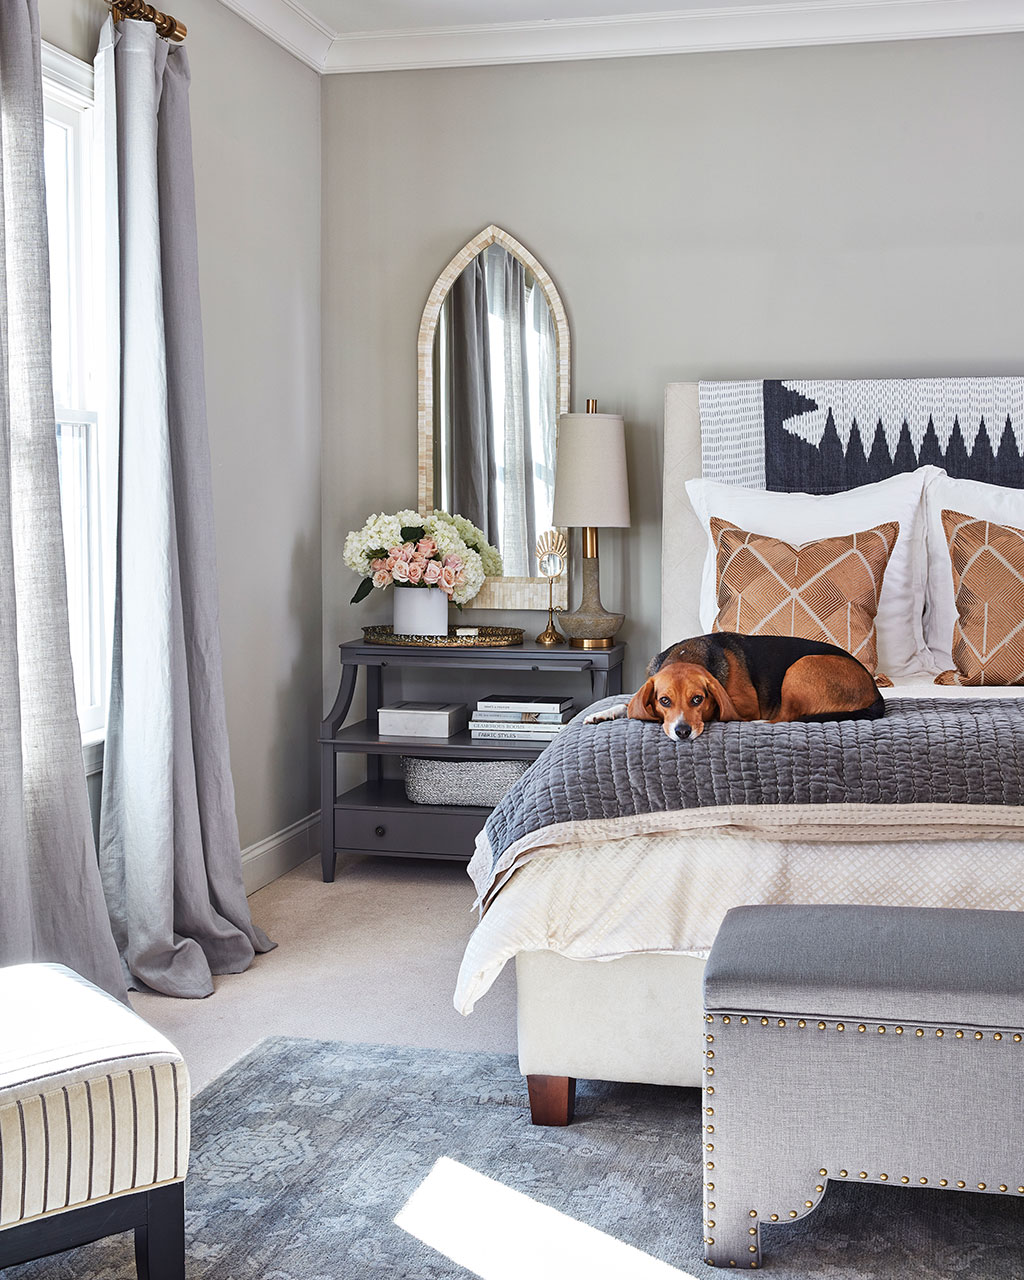 How to decorate around a bed. Option: hang mirrors above nightstands. (Design: Natalie Nasser via Ballard Designs) // mirrors above nightstands, mirrors above bedside tables, gray and white bedroom, traditional bedroom, transitional bedroom